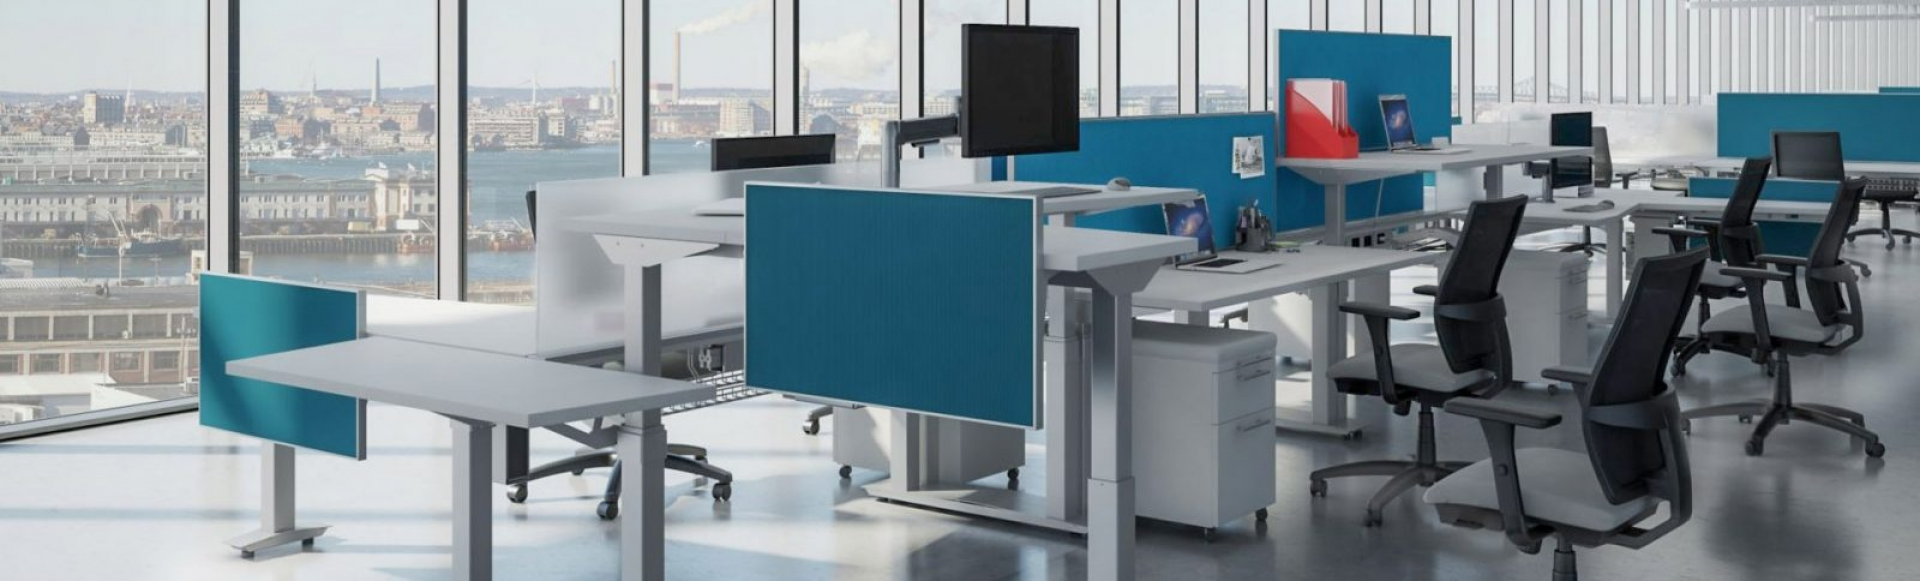 Custom Office Furniture Work Stations In Miami Modular Environments